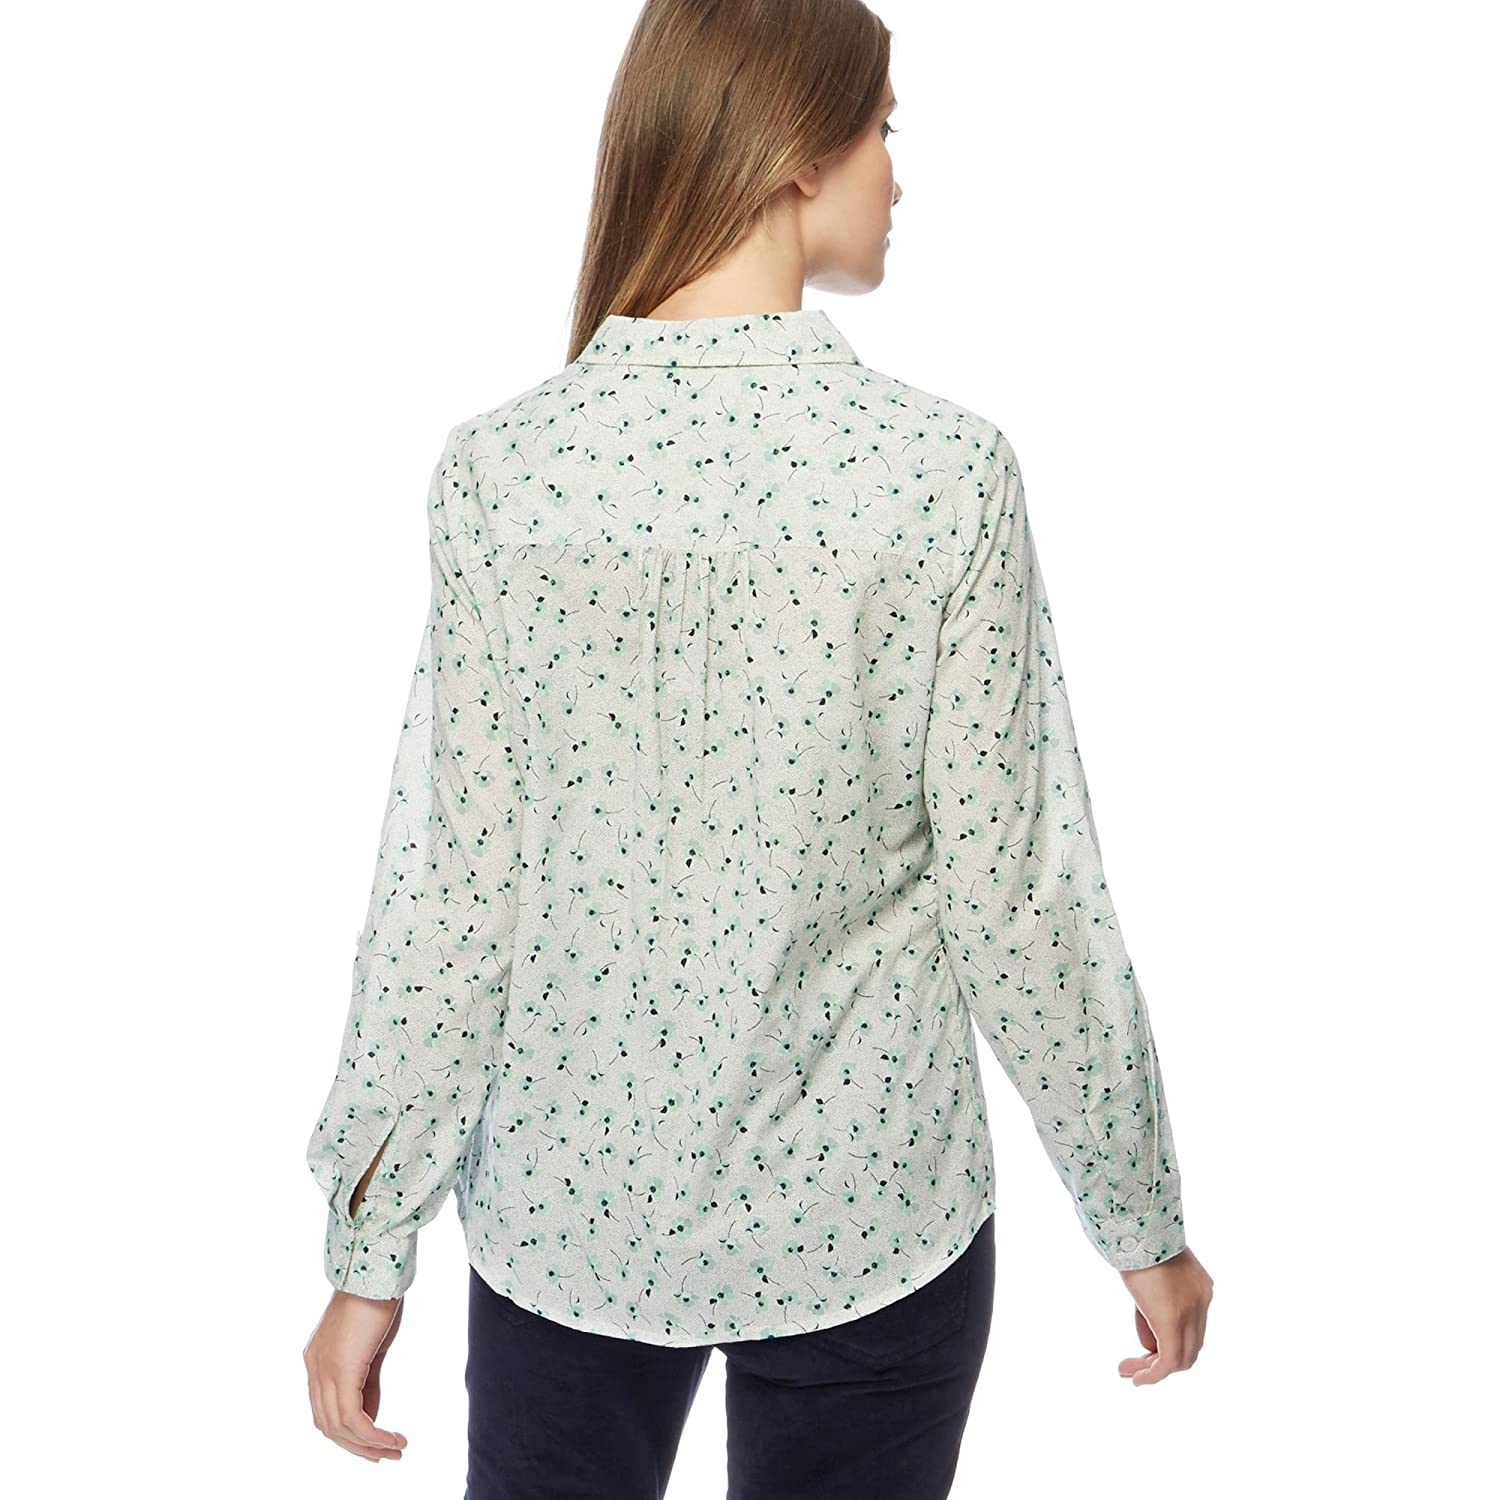 Debenhams Maine New England Womens Pale Green Floral Print Shirt: Maine New  England: Amazon.co.uk: Clothing